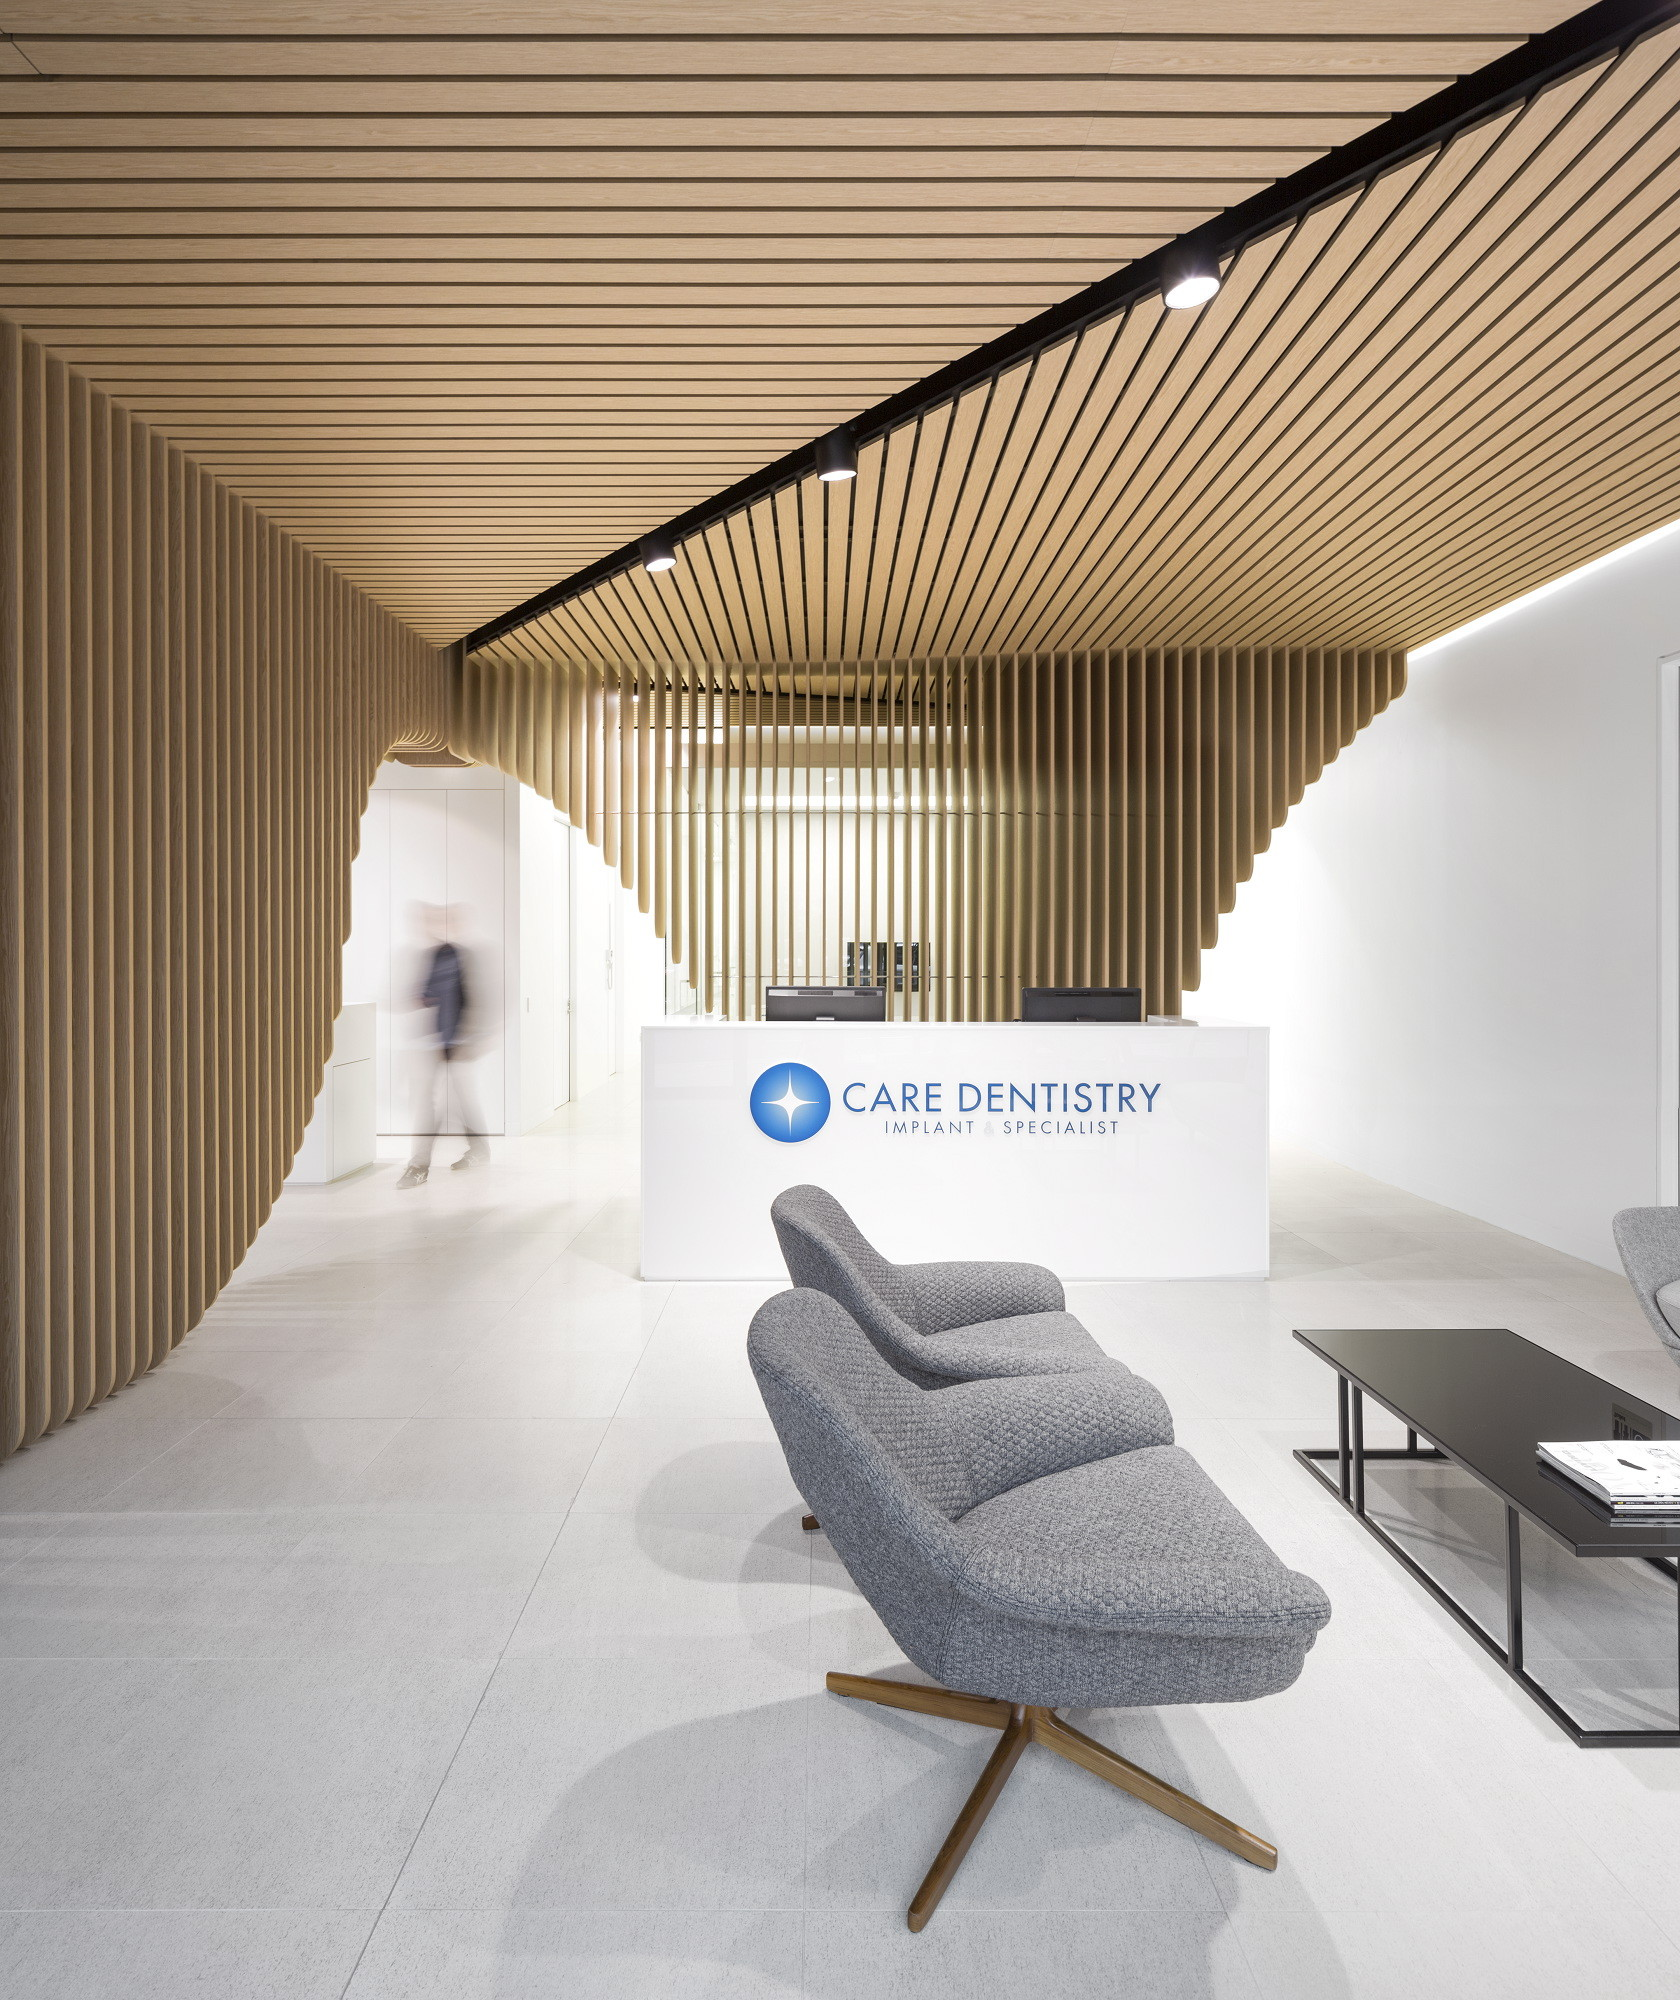 Care Implant Dentistry Pedra Silva Architects Archdaily